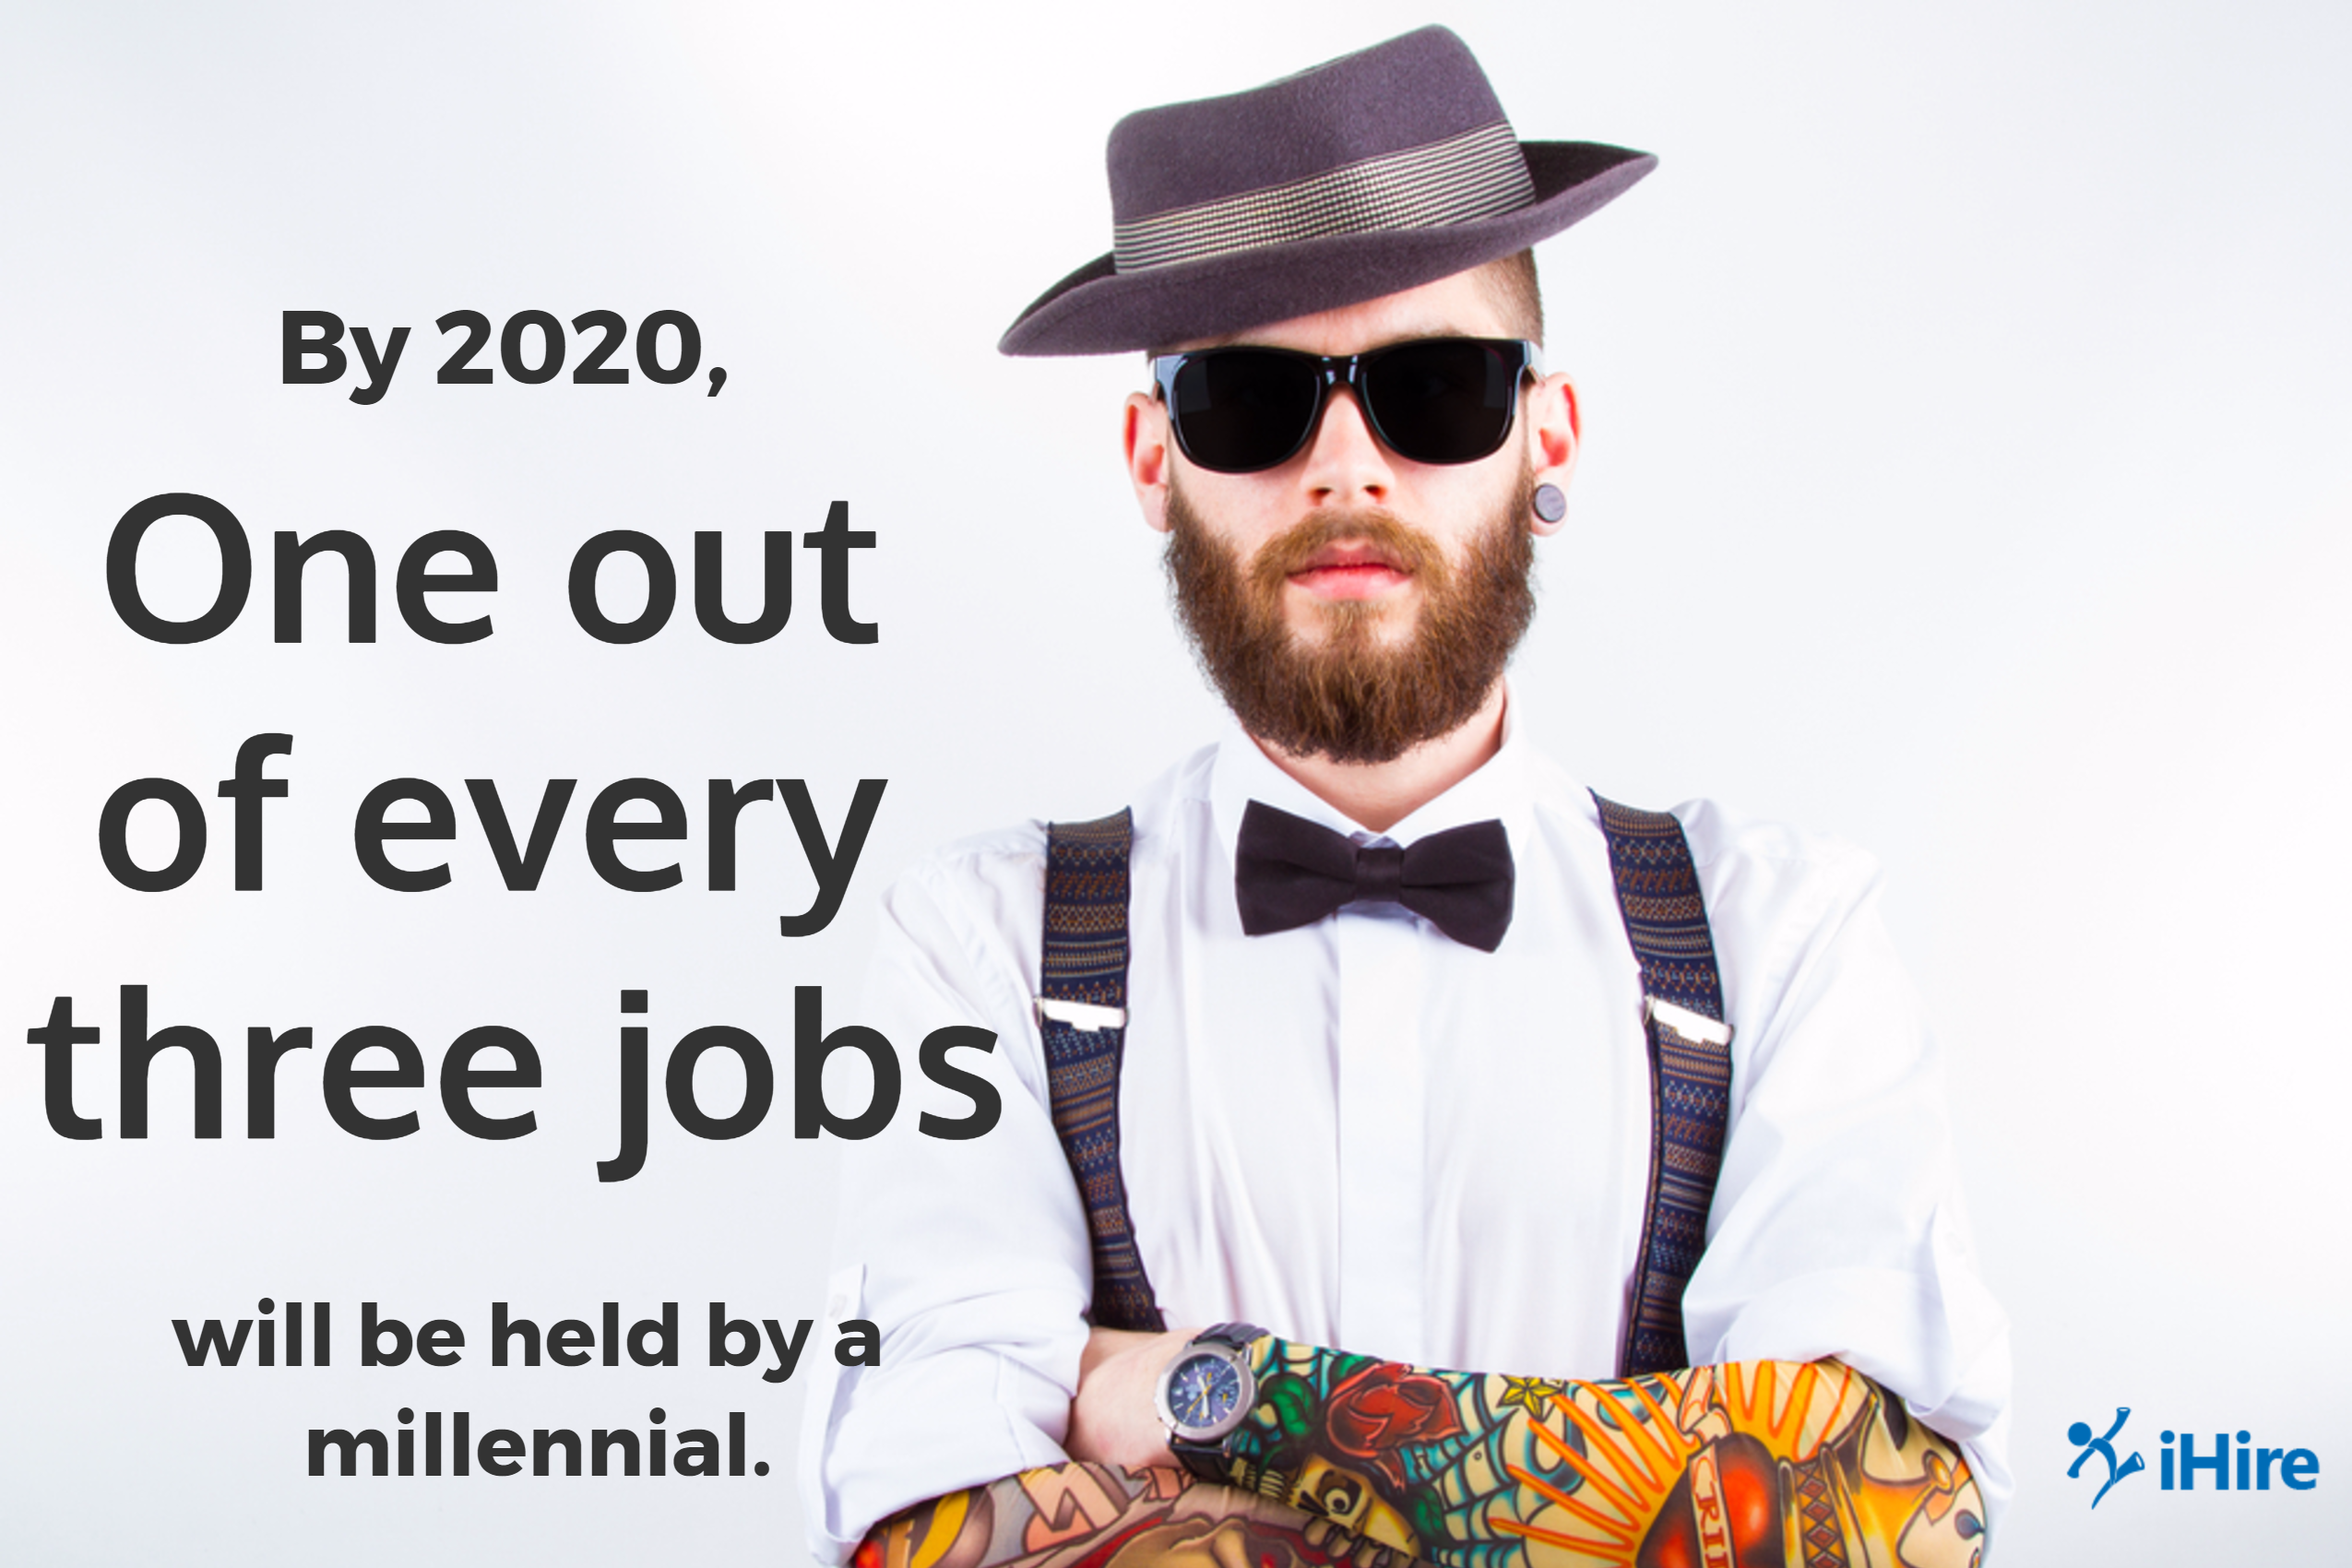 By 2020, one out of every three jobs will be held by a millennial.